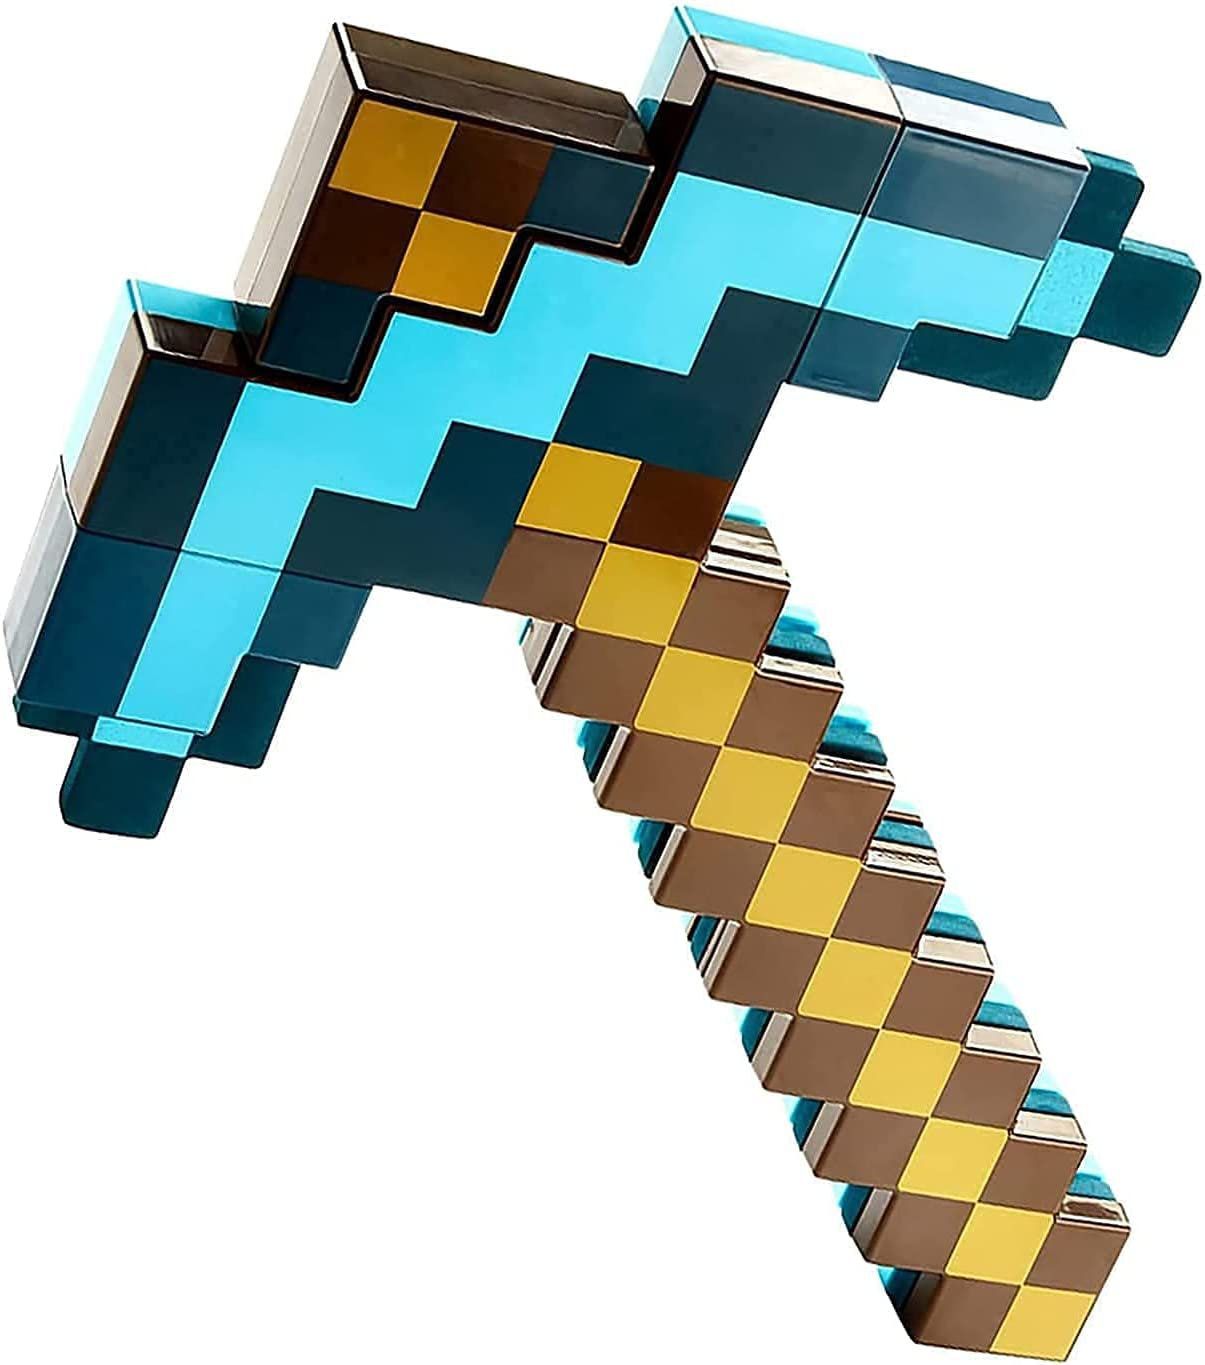 UNBoa168 Plastic Diamond Sword Pickax Max 65% OFF Two Limited time trial price Deformed in One